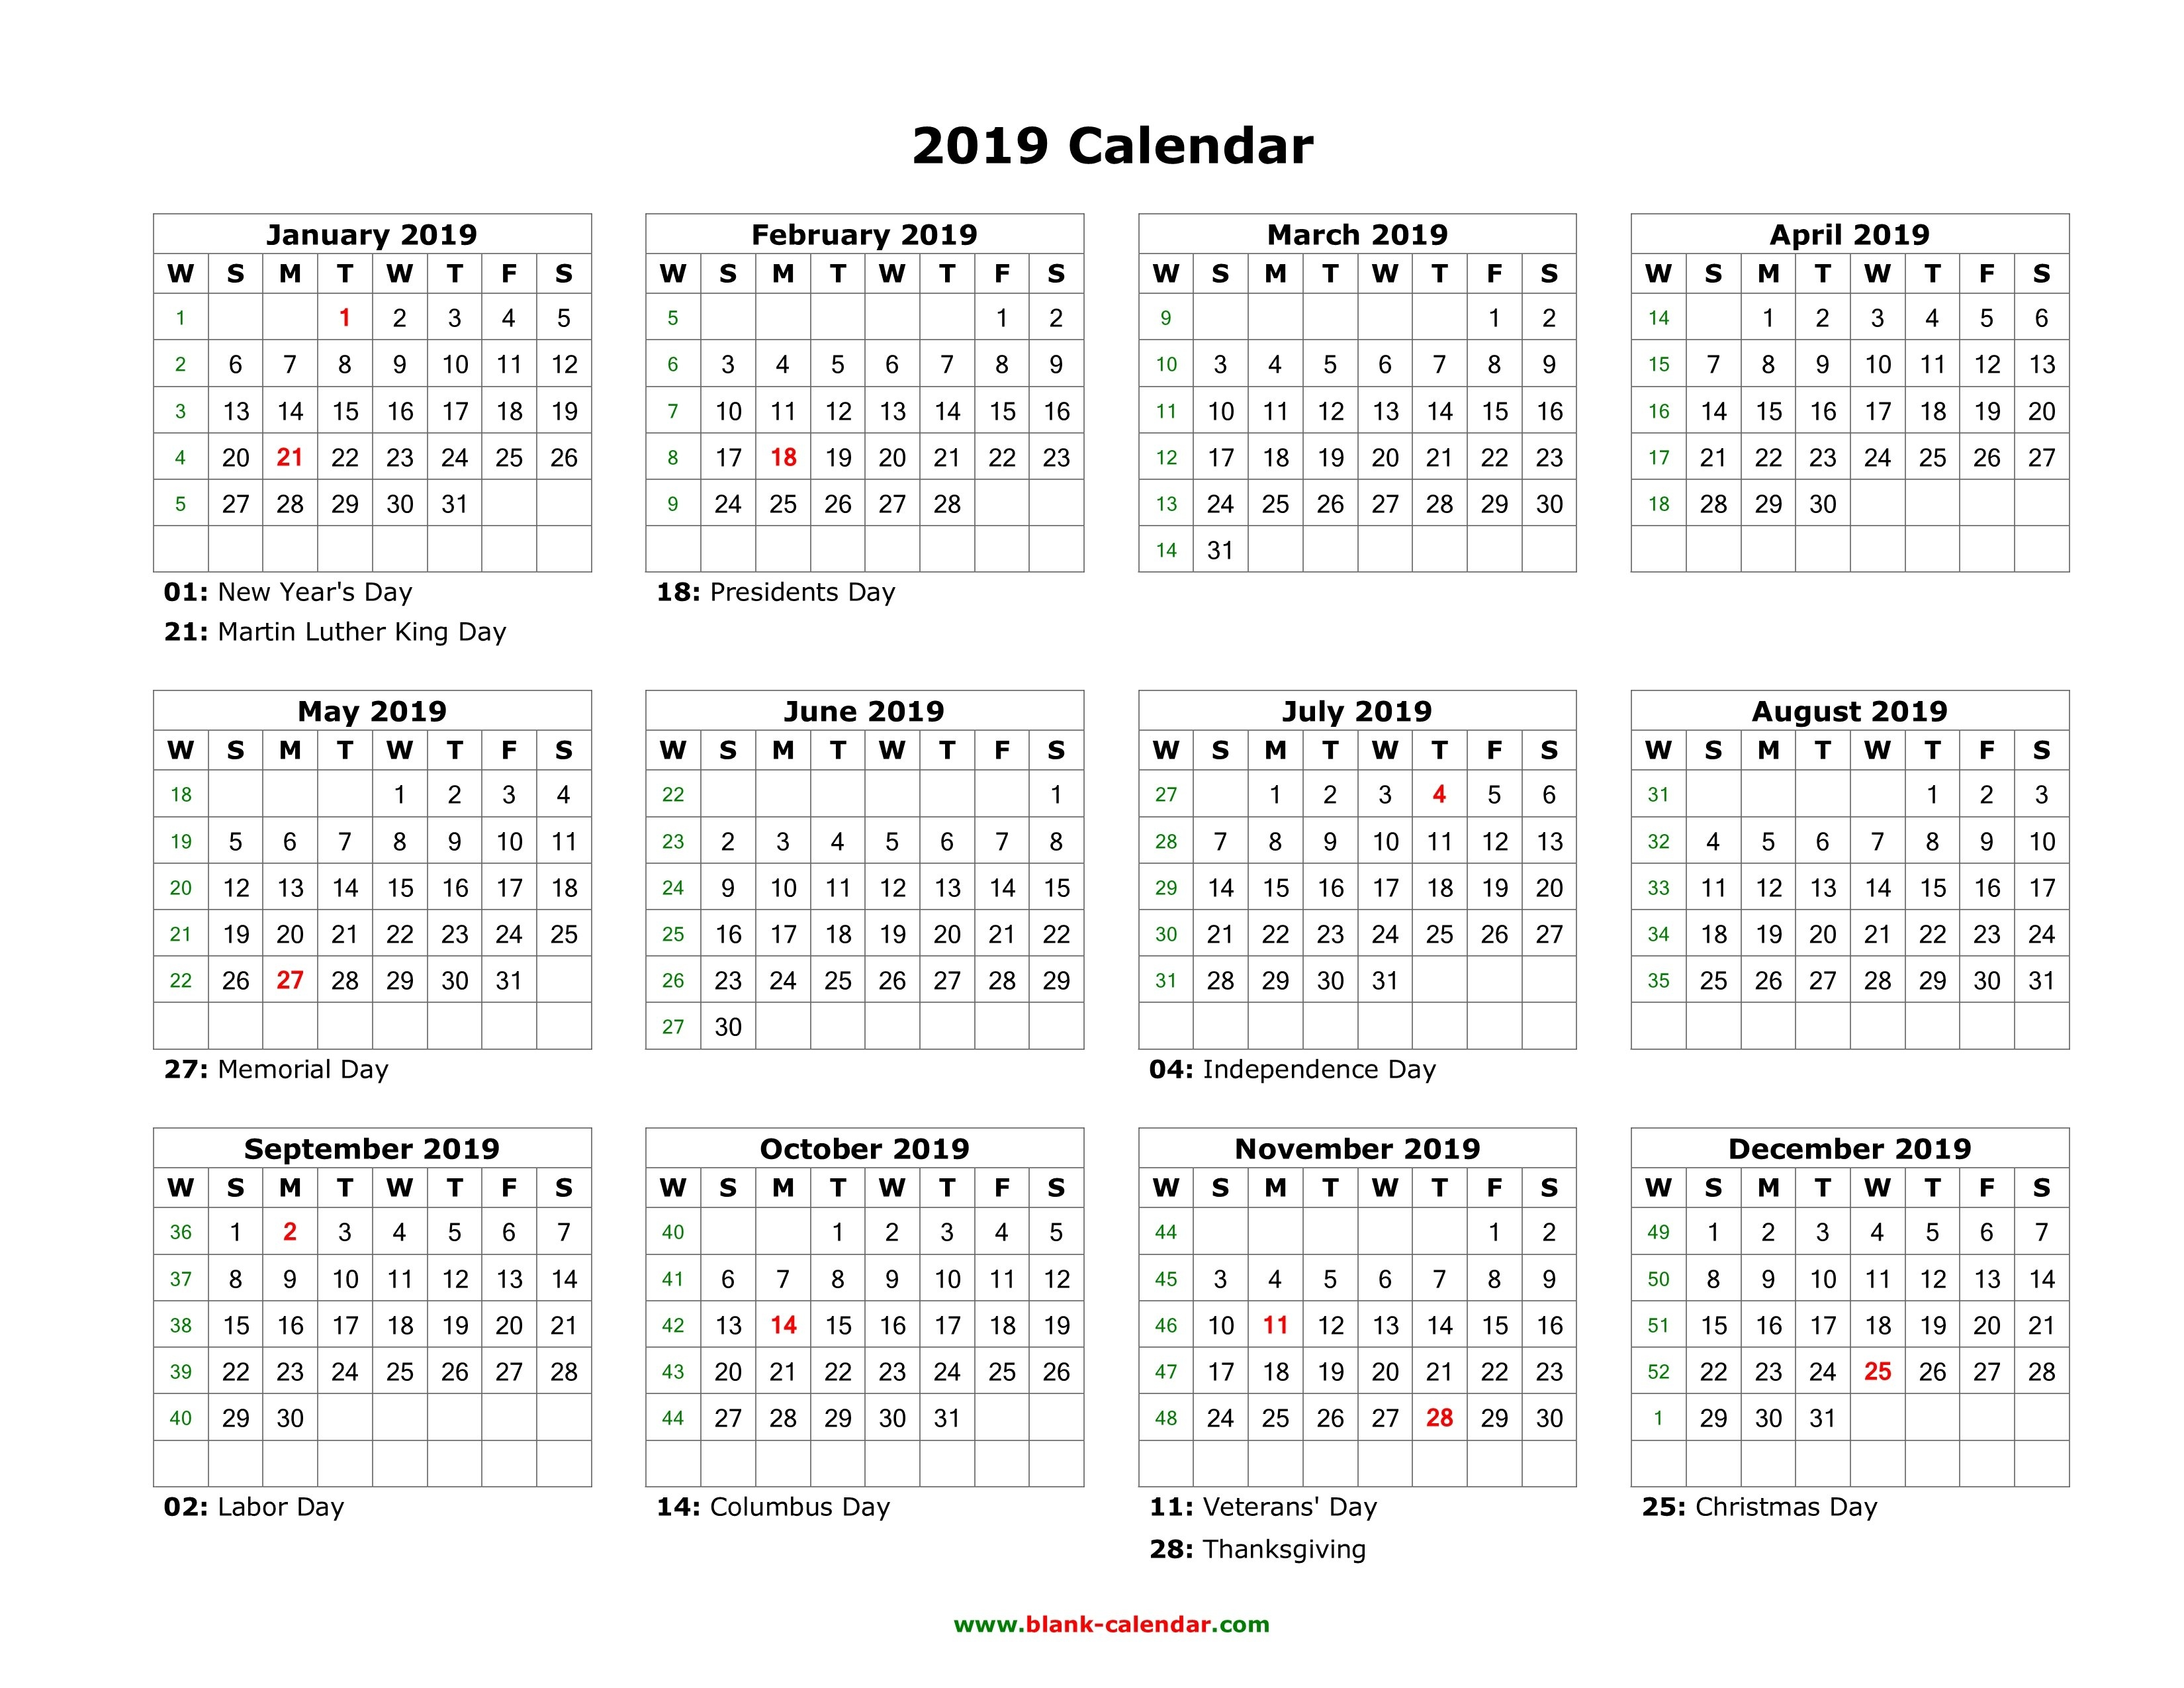 Blank Calendar 2019 | Free Download Calendar Templates Calendar 2019 Year Printable Free